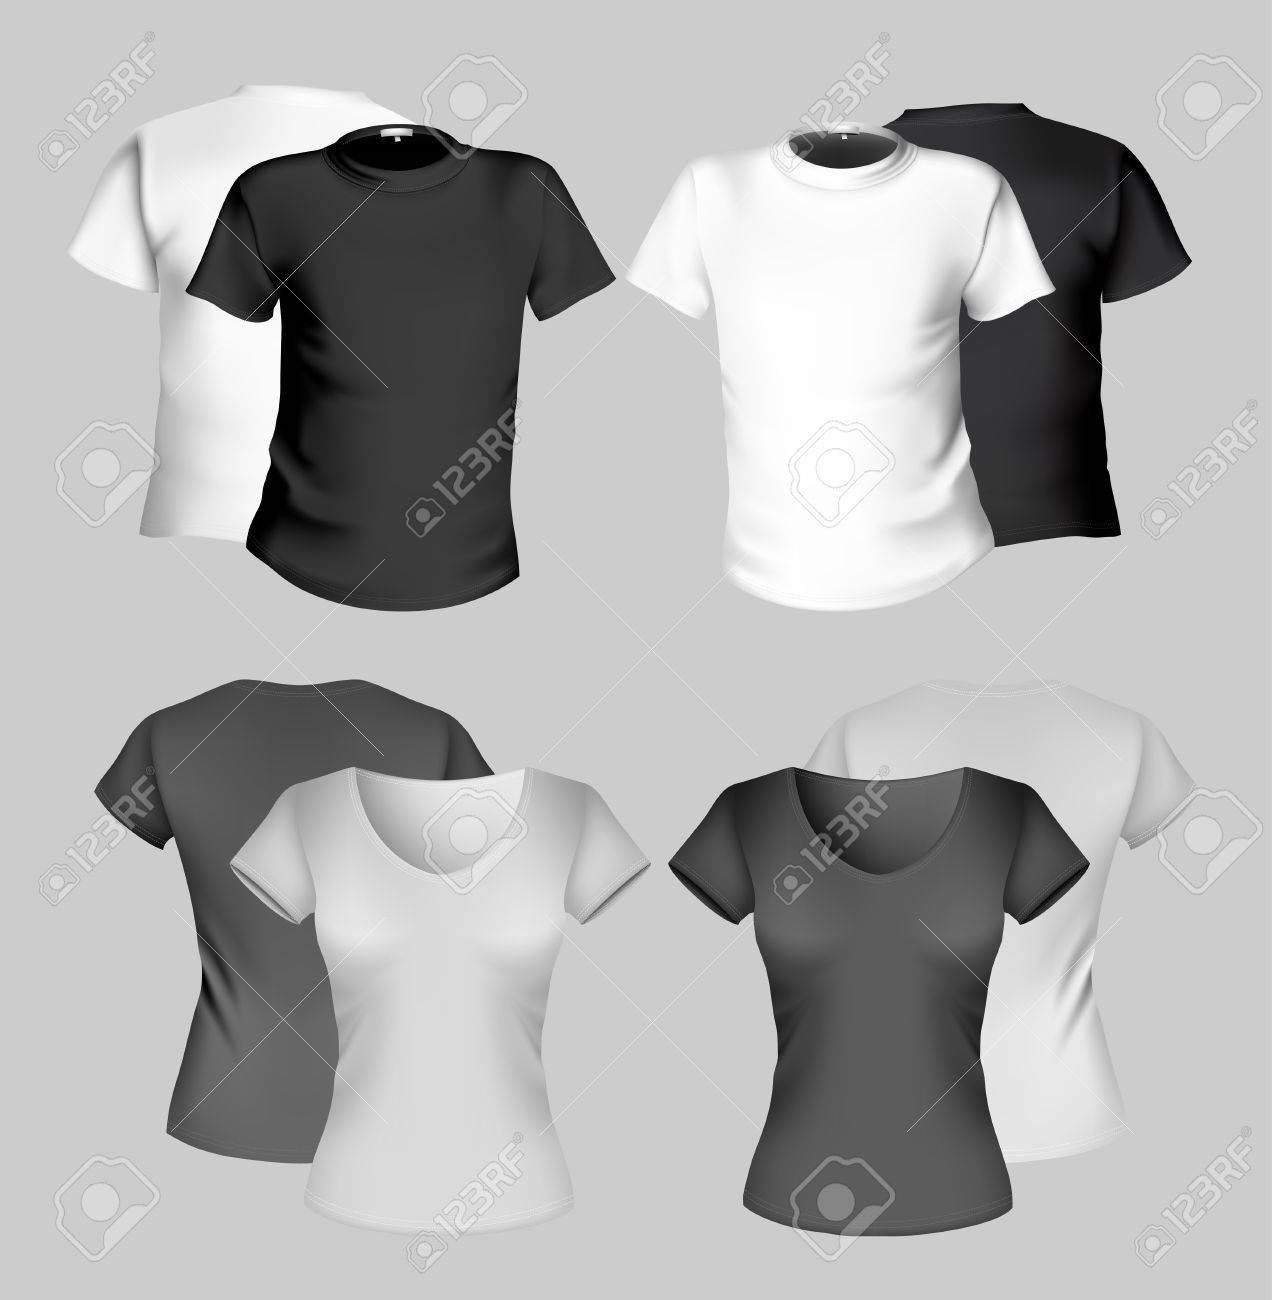 Black t shirt design template - T Shirt Design Template Men And Women Black And